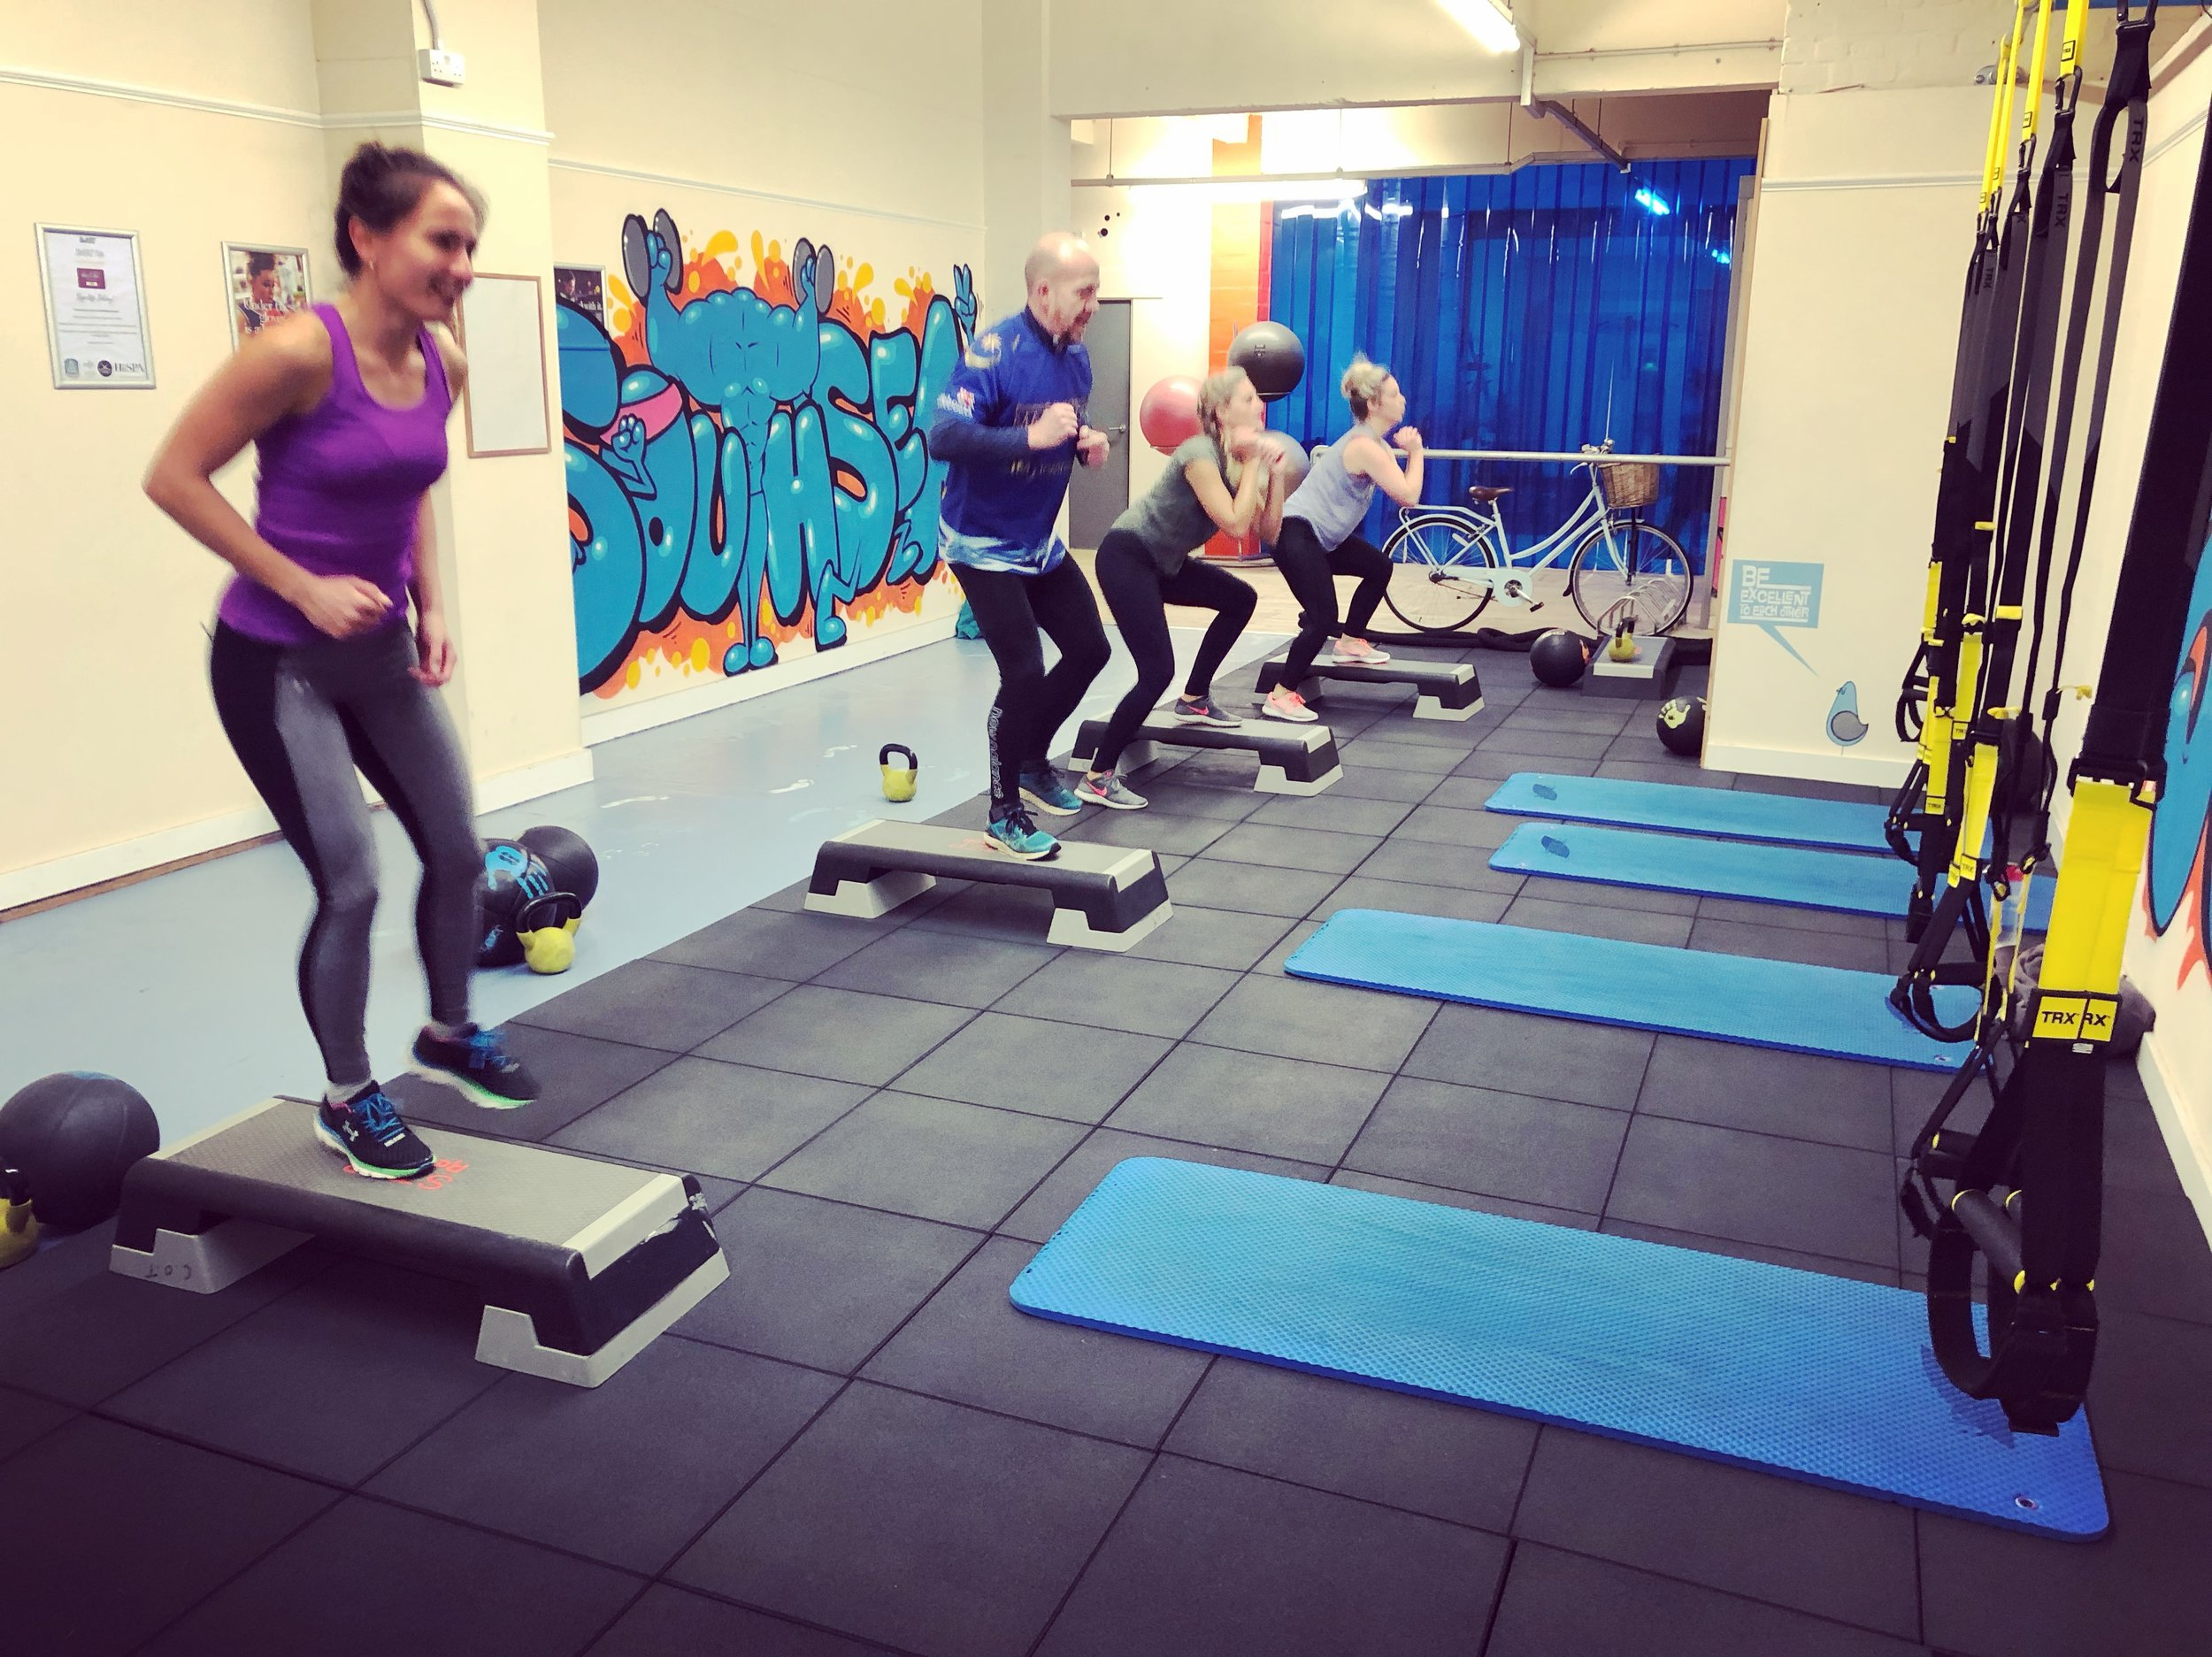 Classes - We offer a multi-disciplinary range of fitness classes alongside a variety of booking options to offer total flexibility for our clients